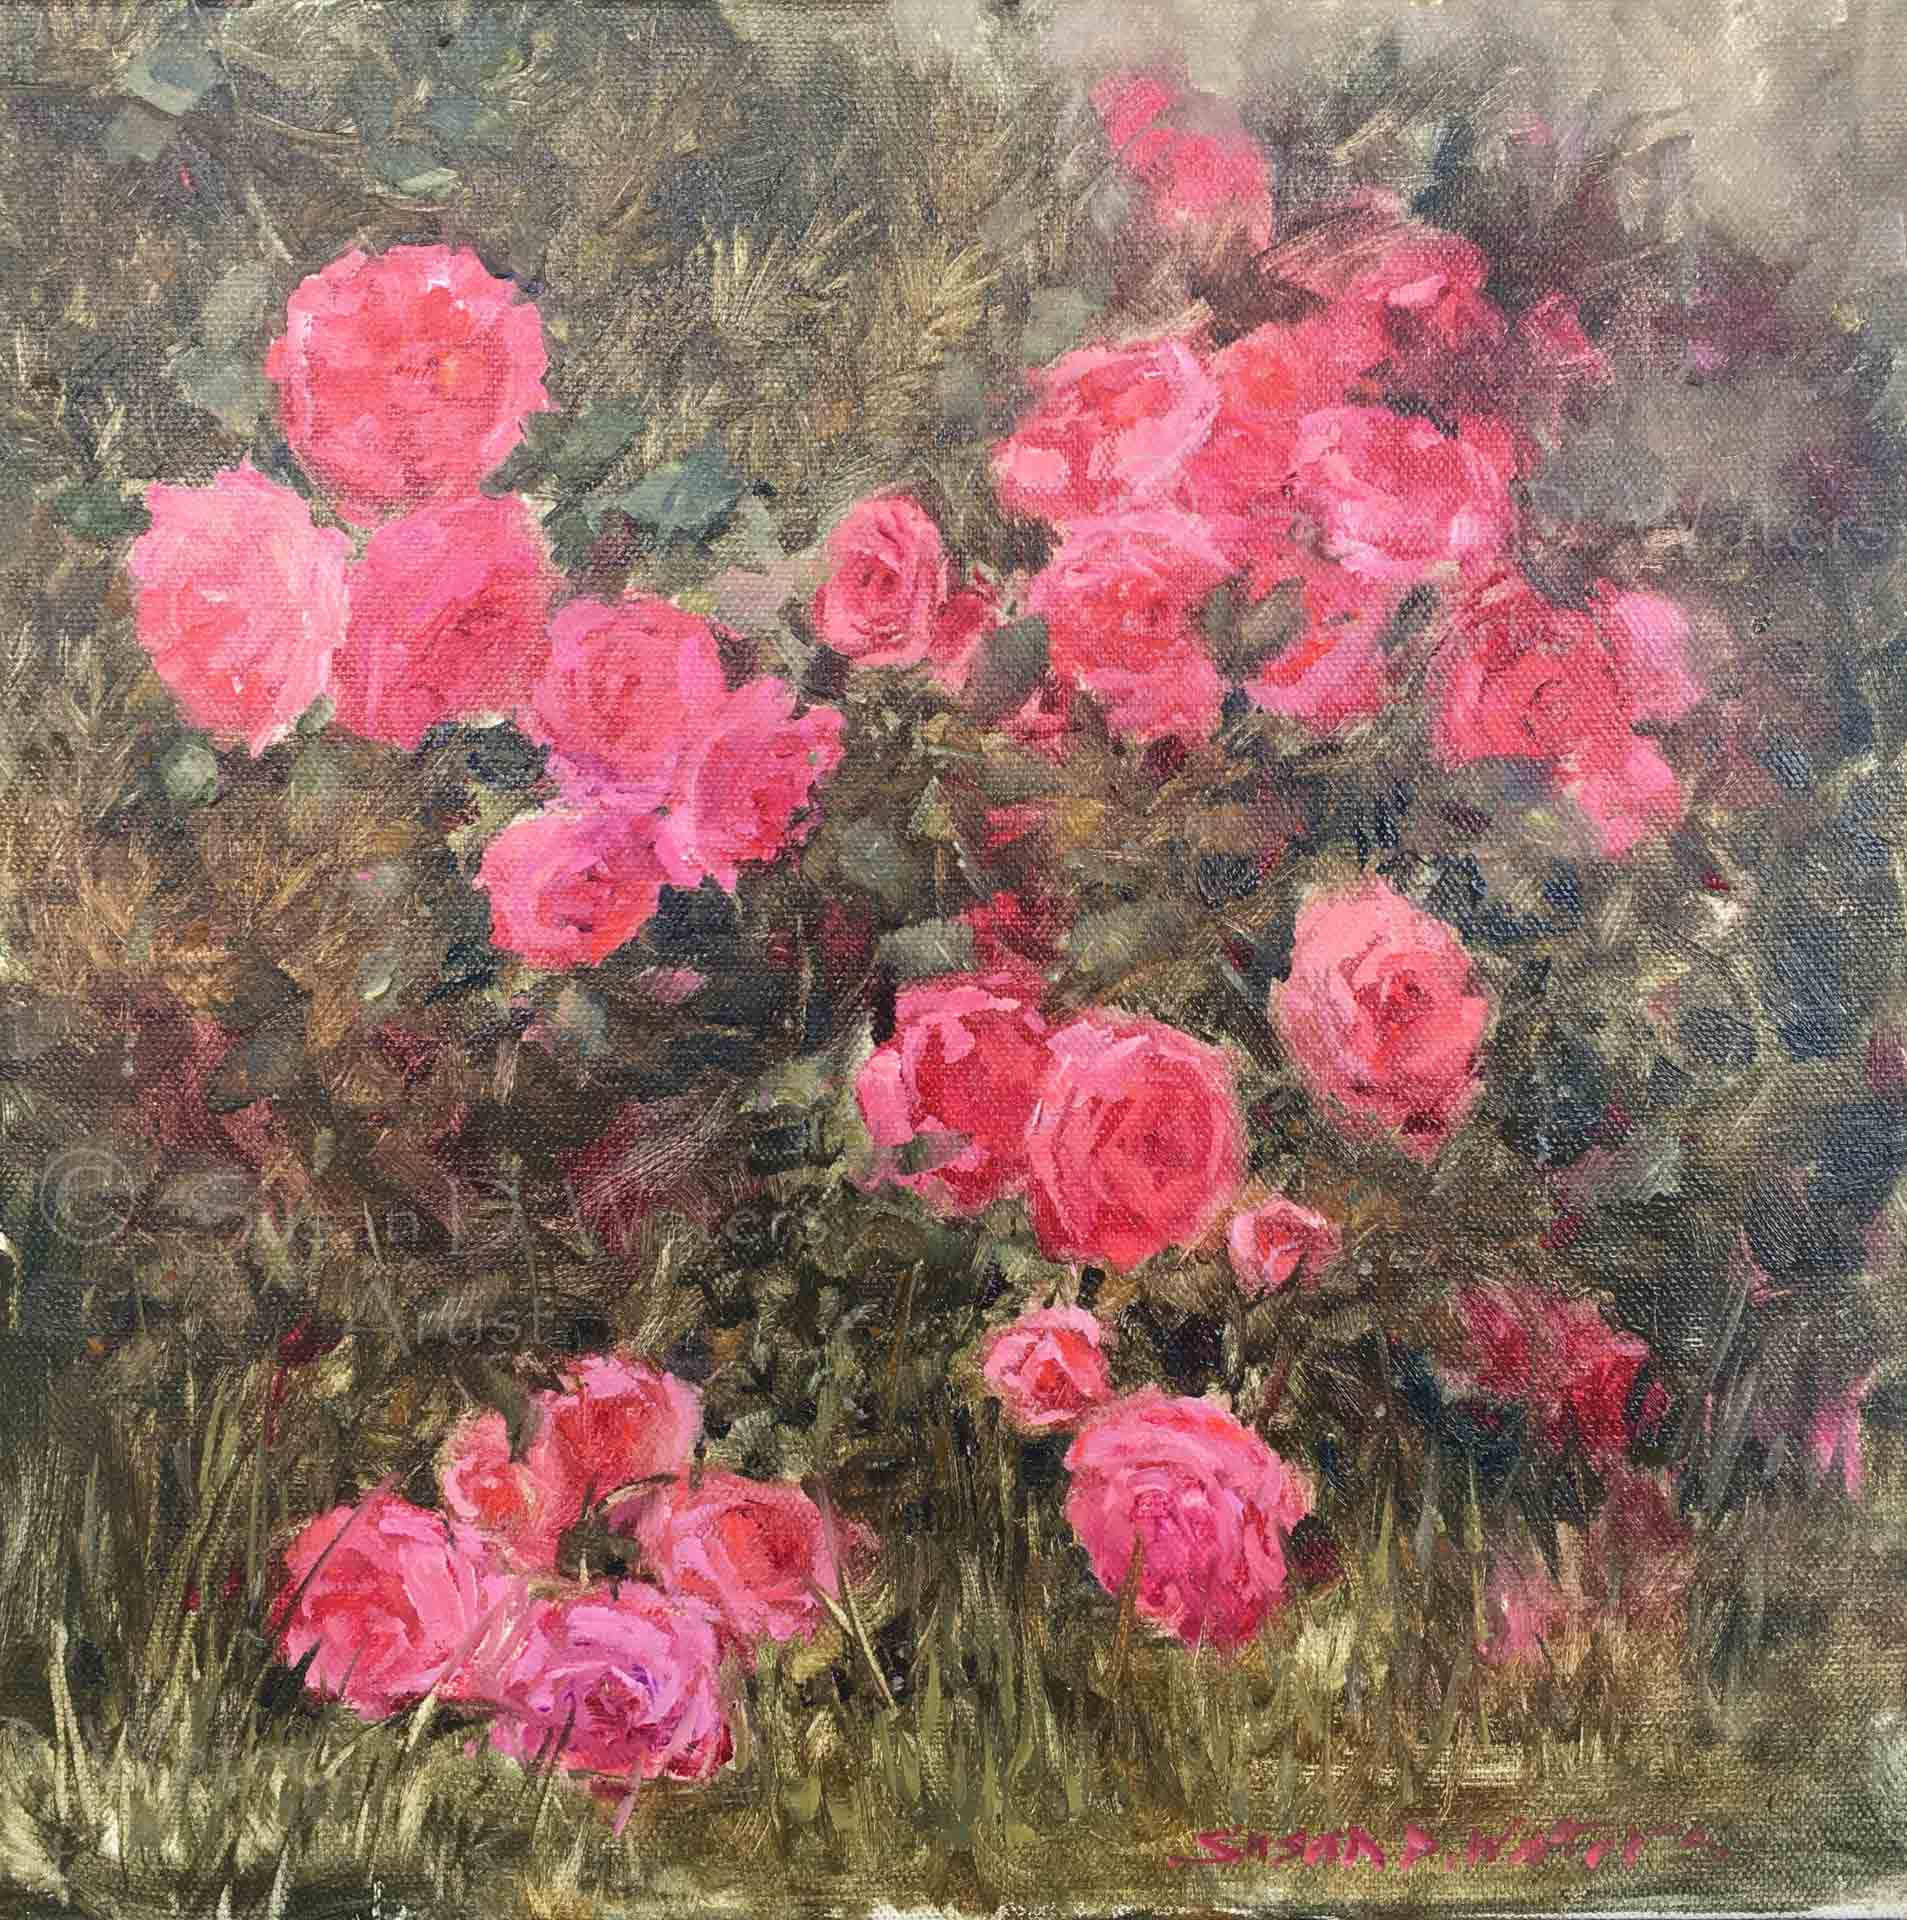 Carpet-Roses,-Susan-Duke-Waters